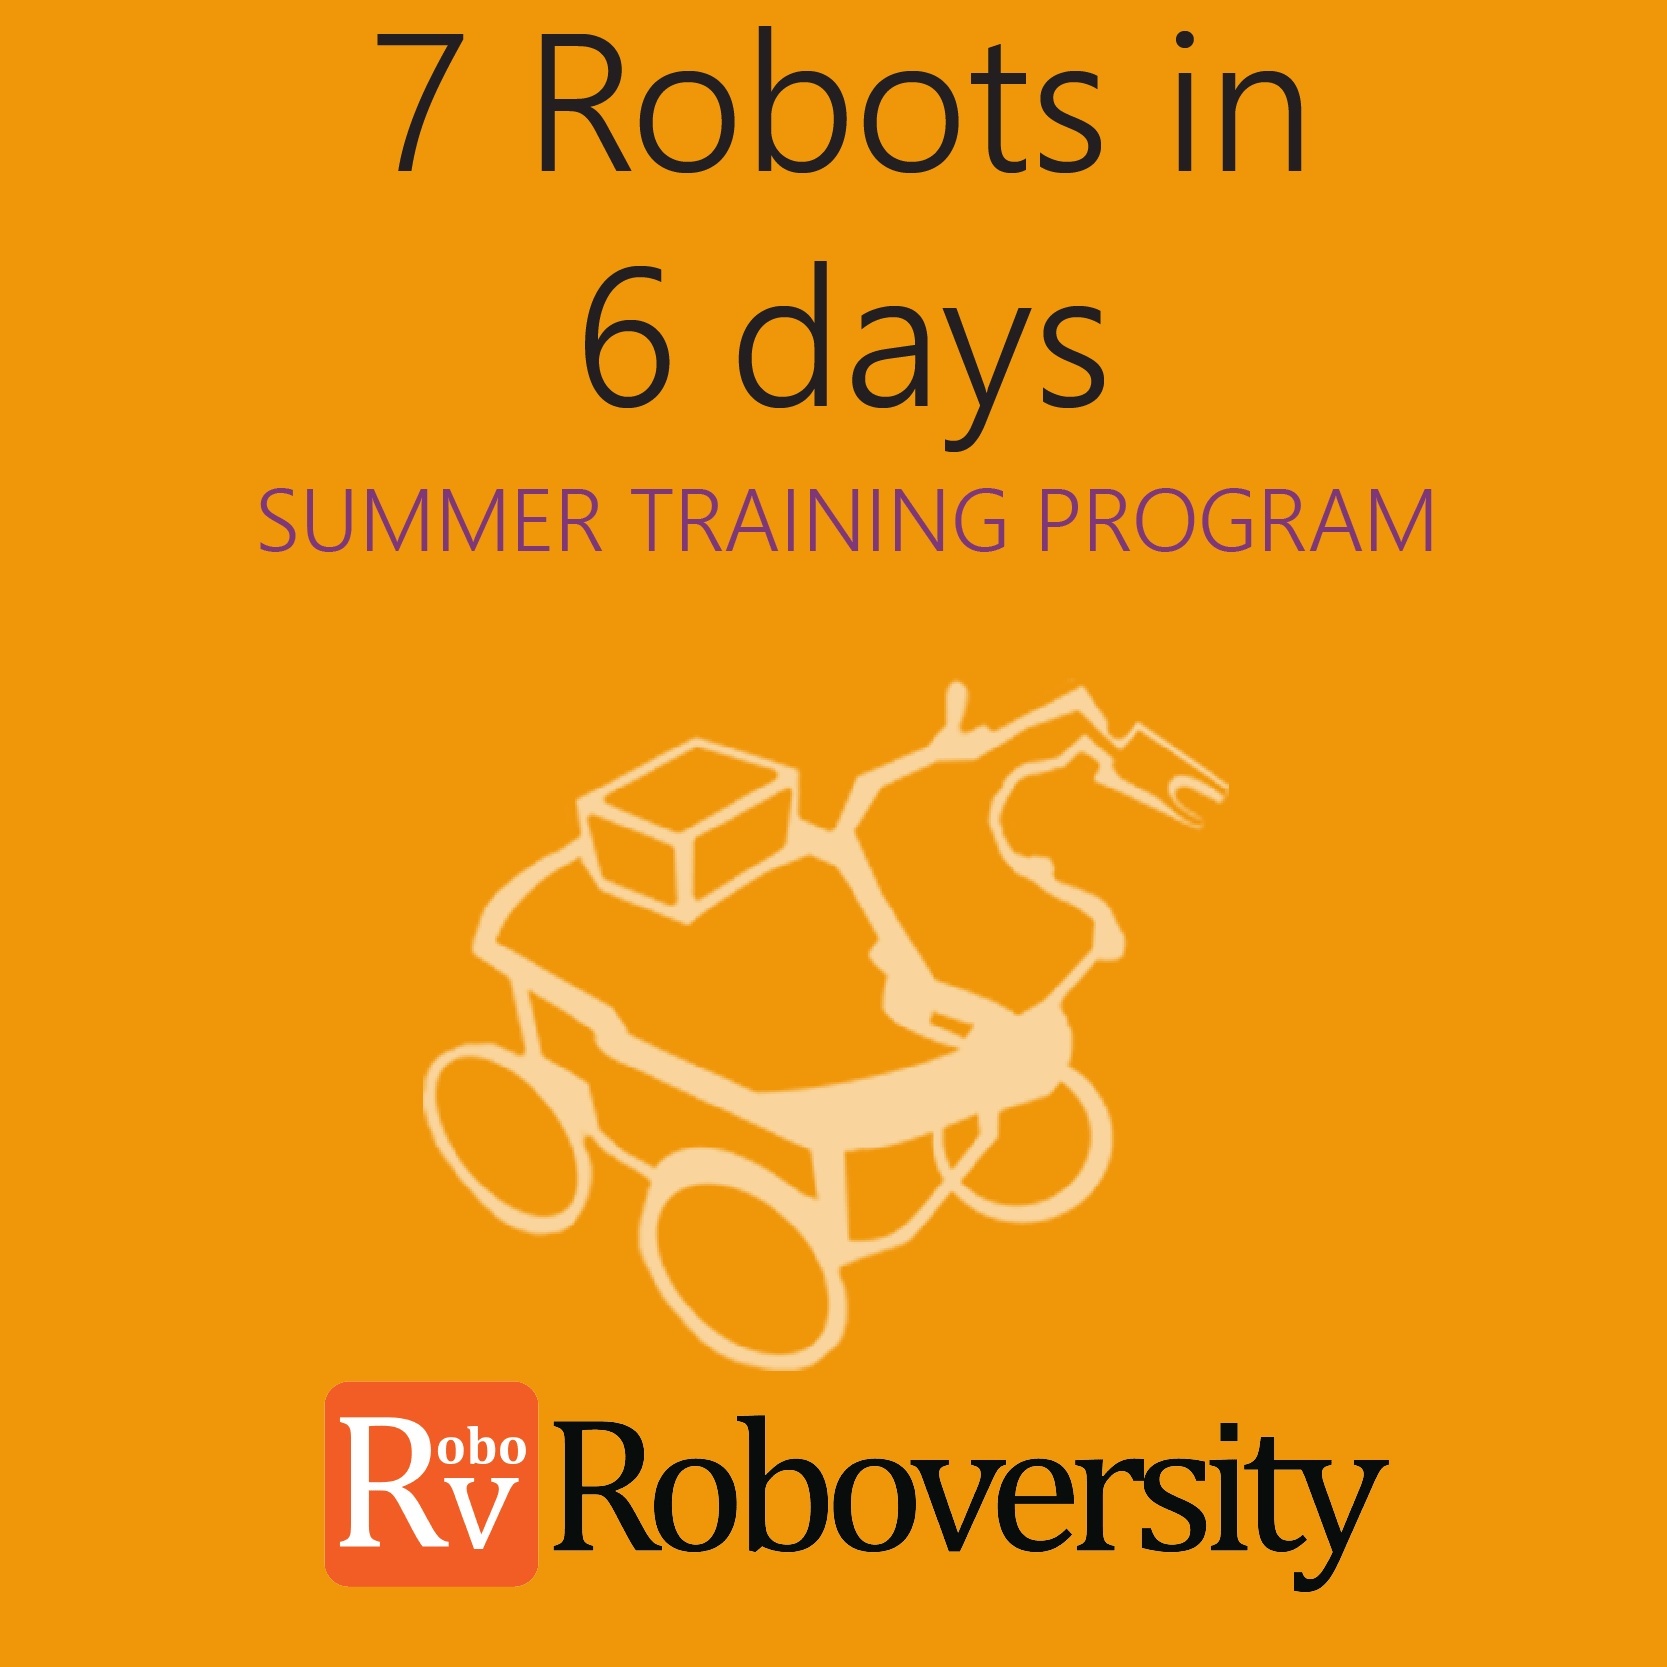 Summer Training Program on 7 Robots in 6 Days  at Skyfi Labs Center, Mandeep Education Academy, New Rajinder Nagar